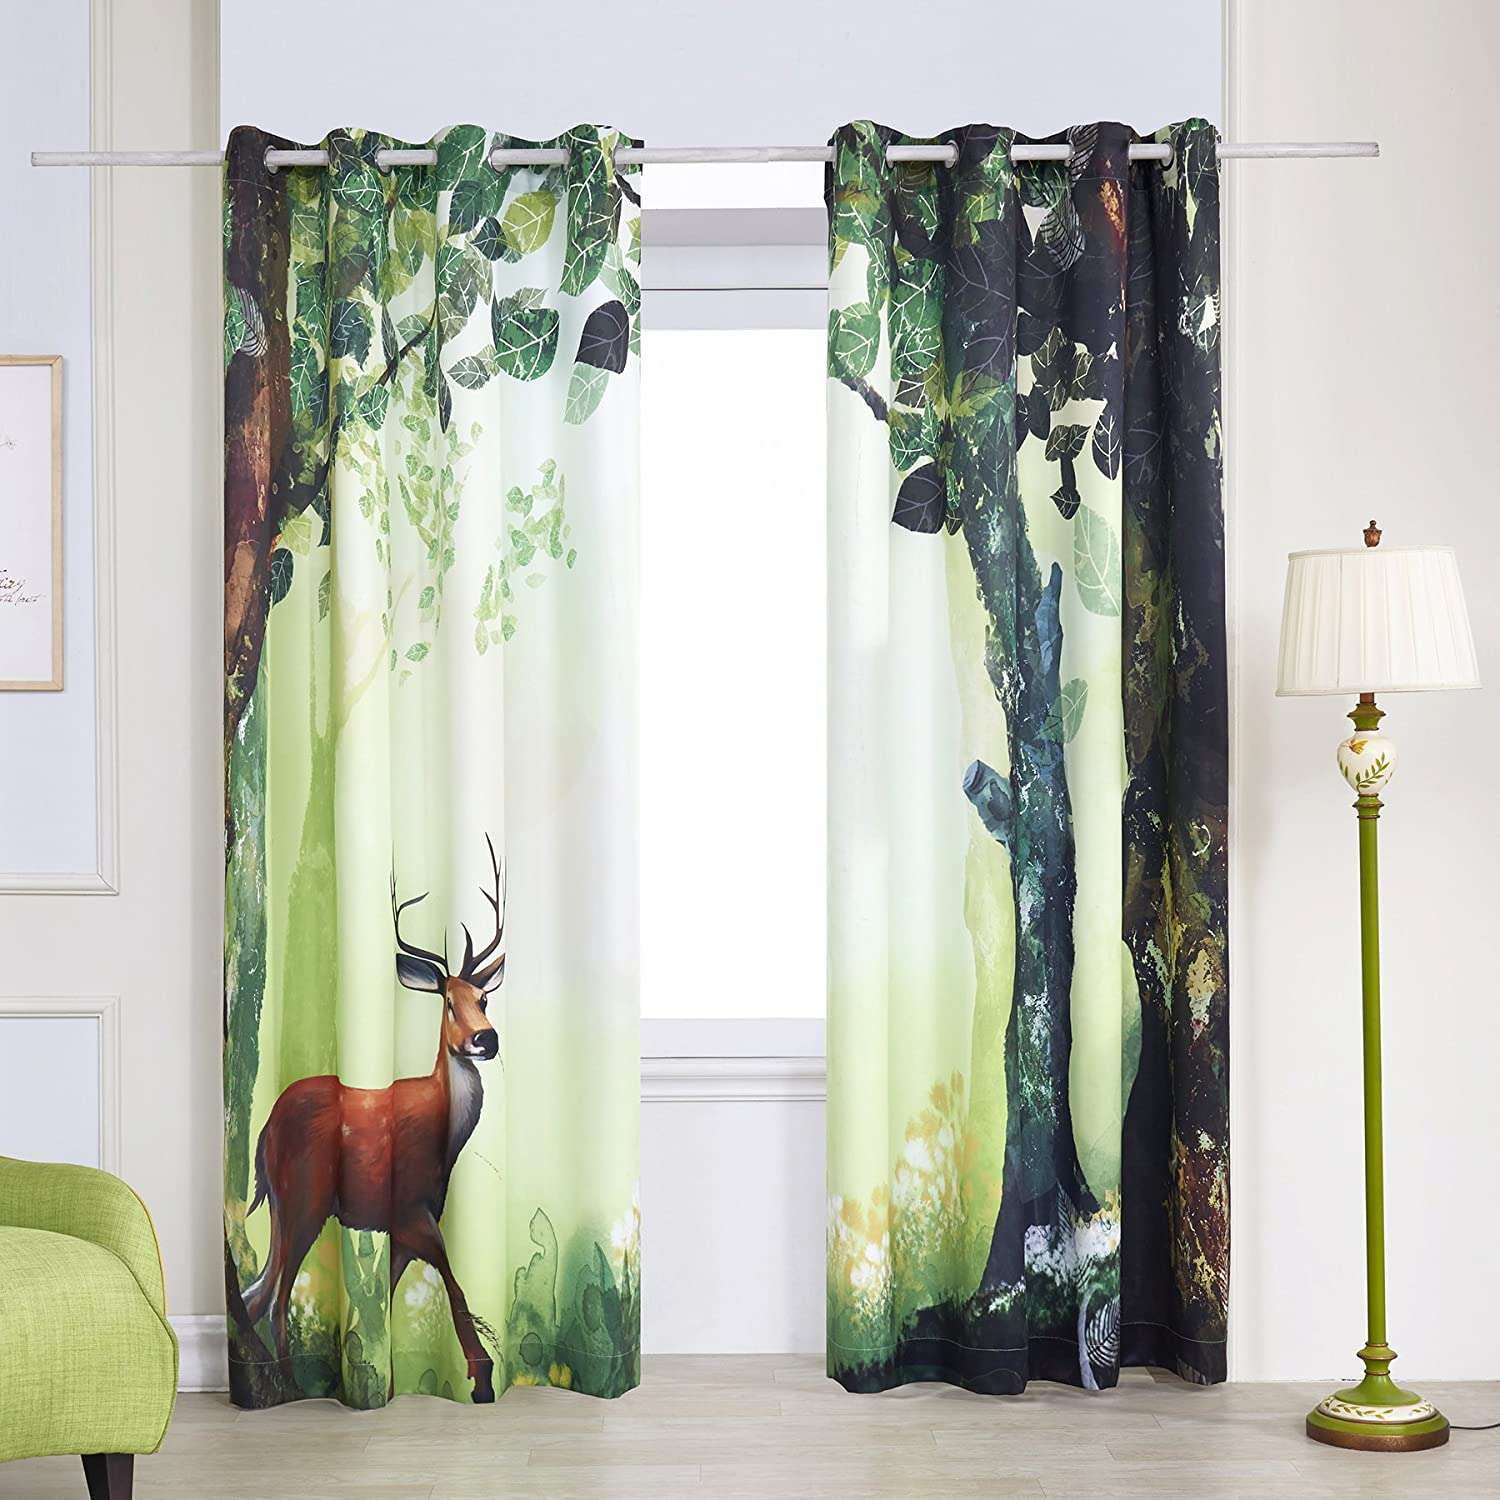 Window Curtain Drapes Set Deer Forest Decor Rustic